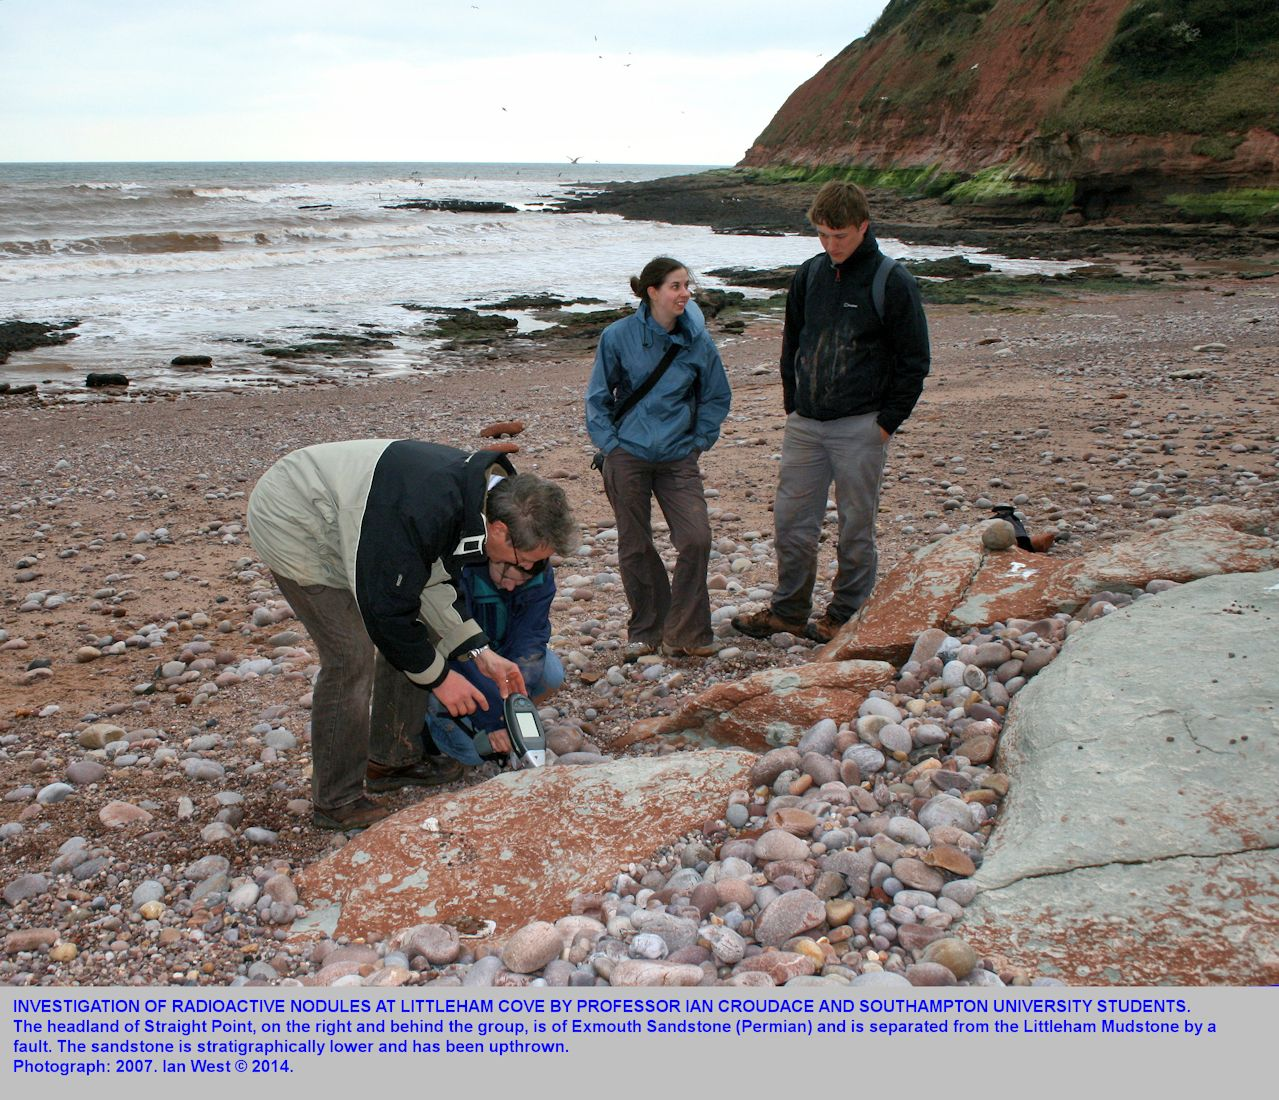 Southampton University research on radioactive nodules in the Littleham Mudstones at Littleham Cove, west of Budleigh Salterton, Devon, with part of Straight Point in the background, April 2007